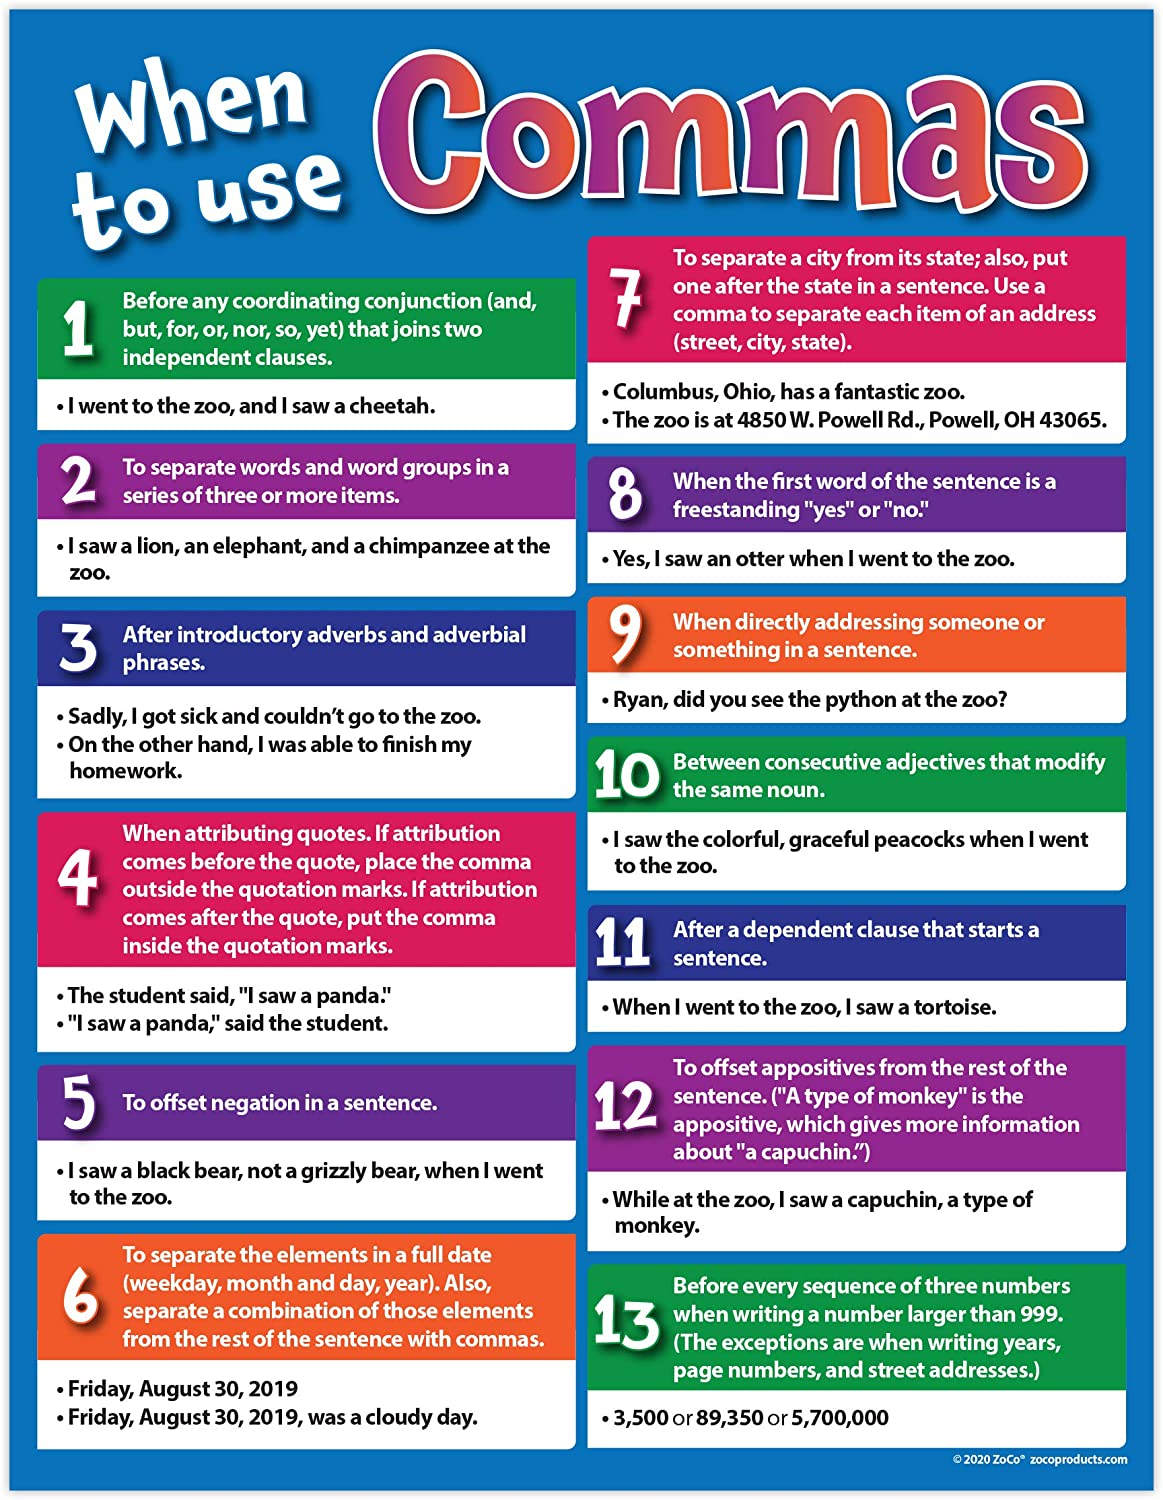 When to Use Commas Poster - Punctuation Chart - Language Arts/Grammar Posters for Elementary, Middle School, High School - English Classroom Decor - Laminated, 17 x 22 inches